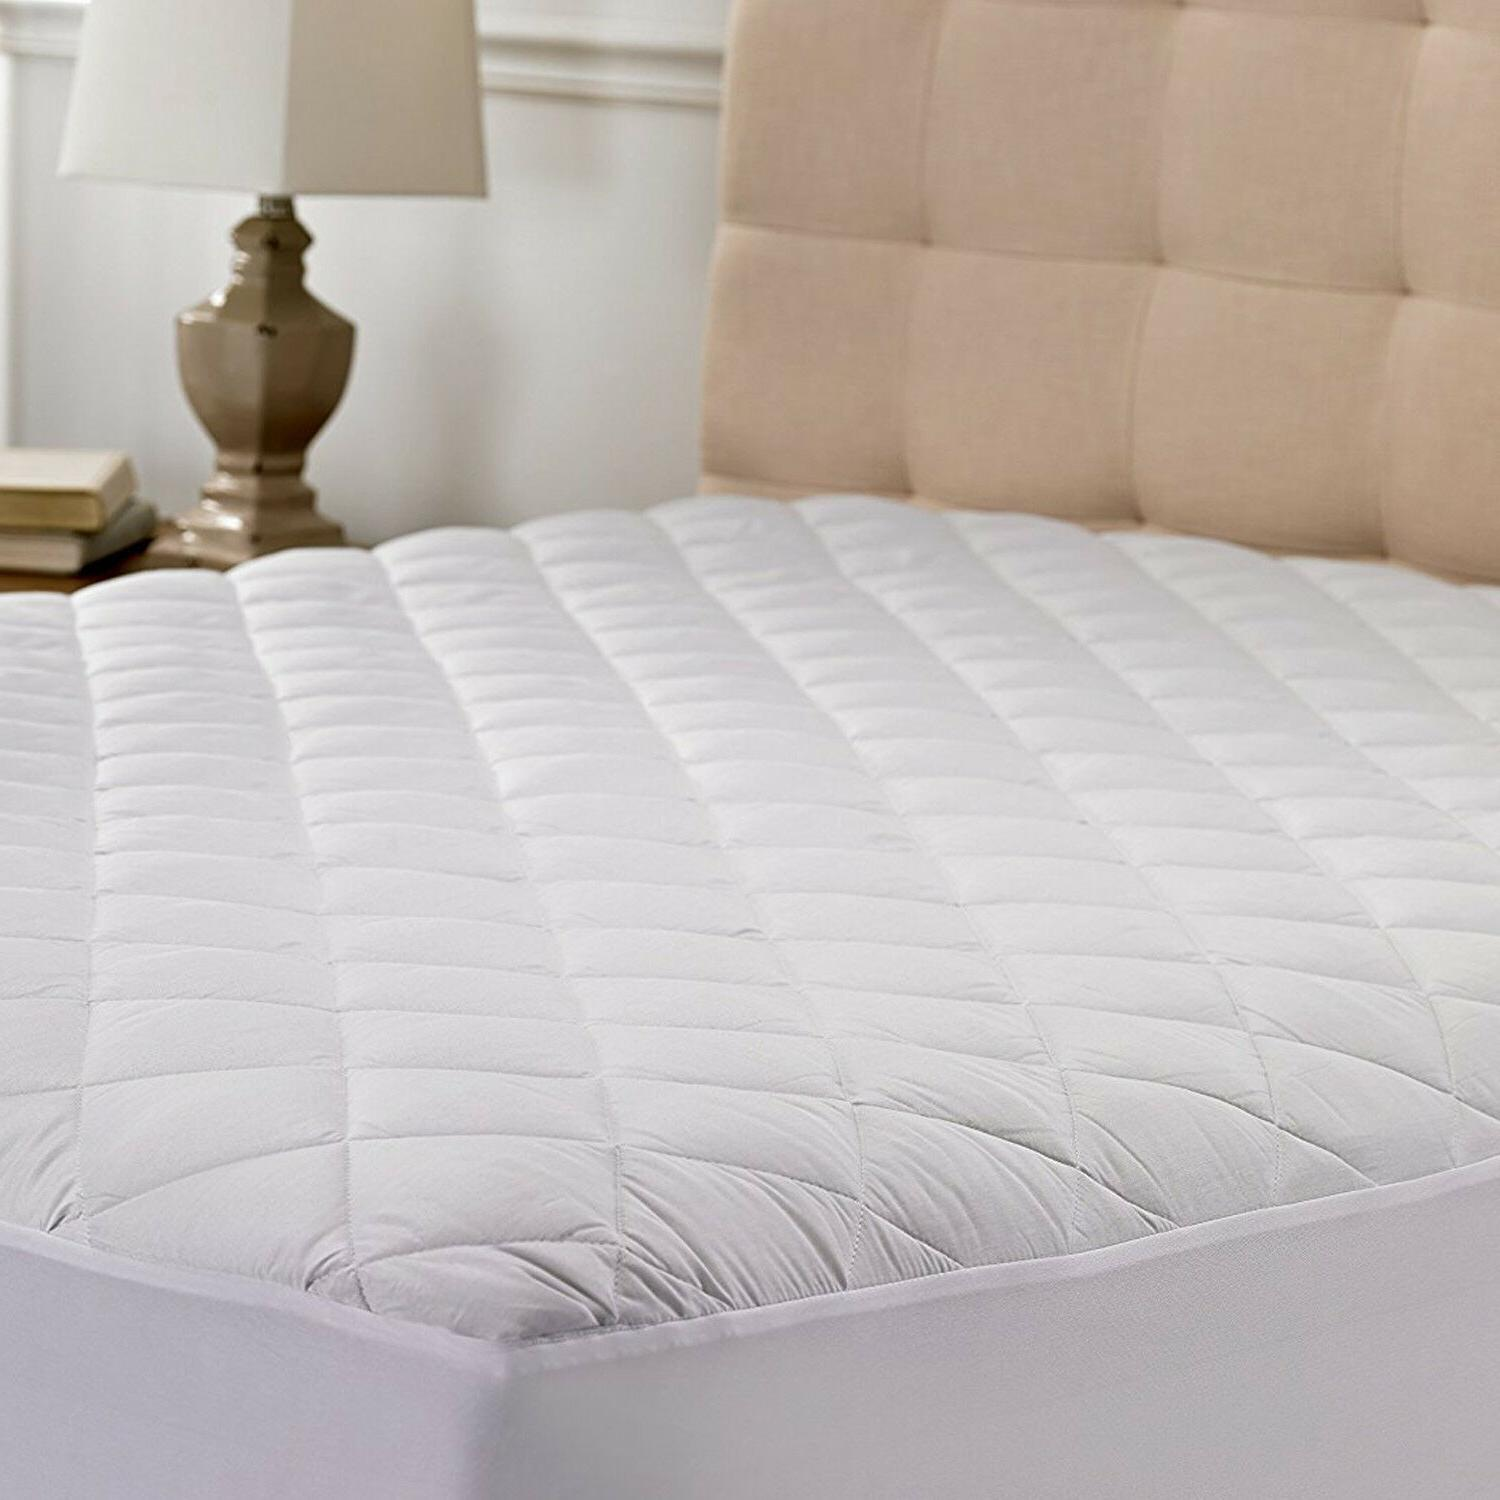 Poly-Cotton Quilted Hypoallergenic Deep Pockets Breathable